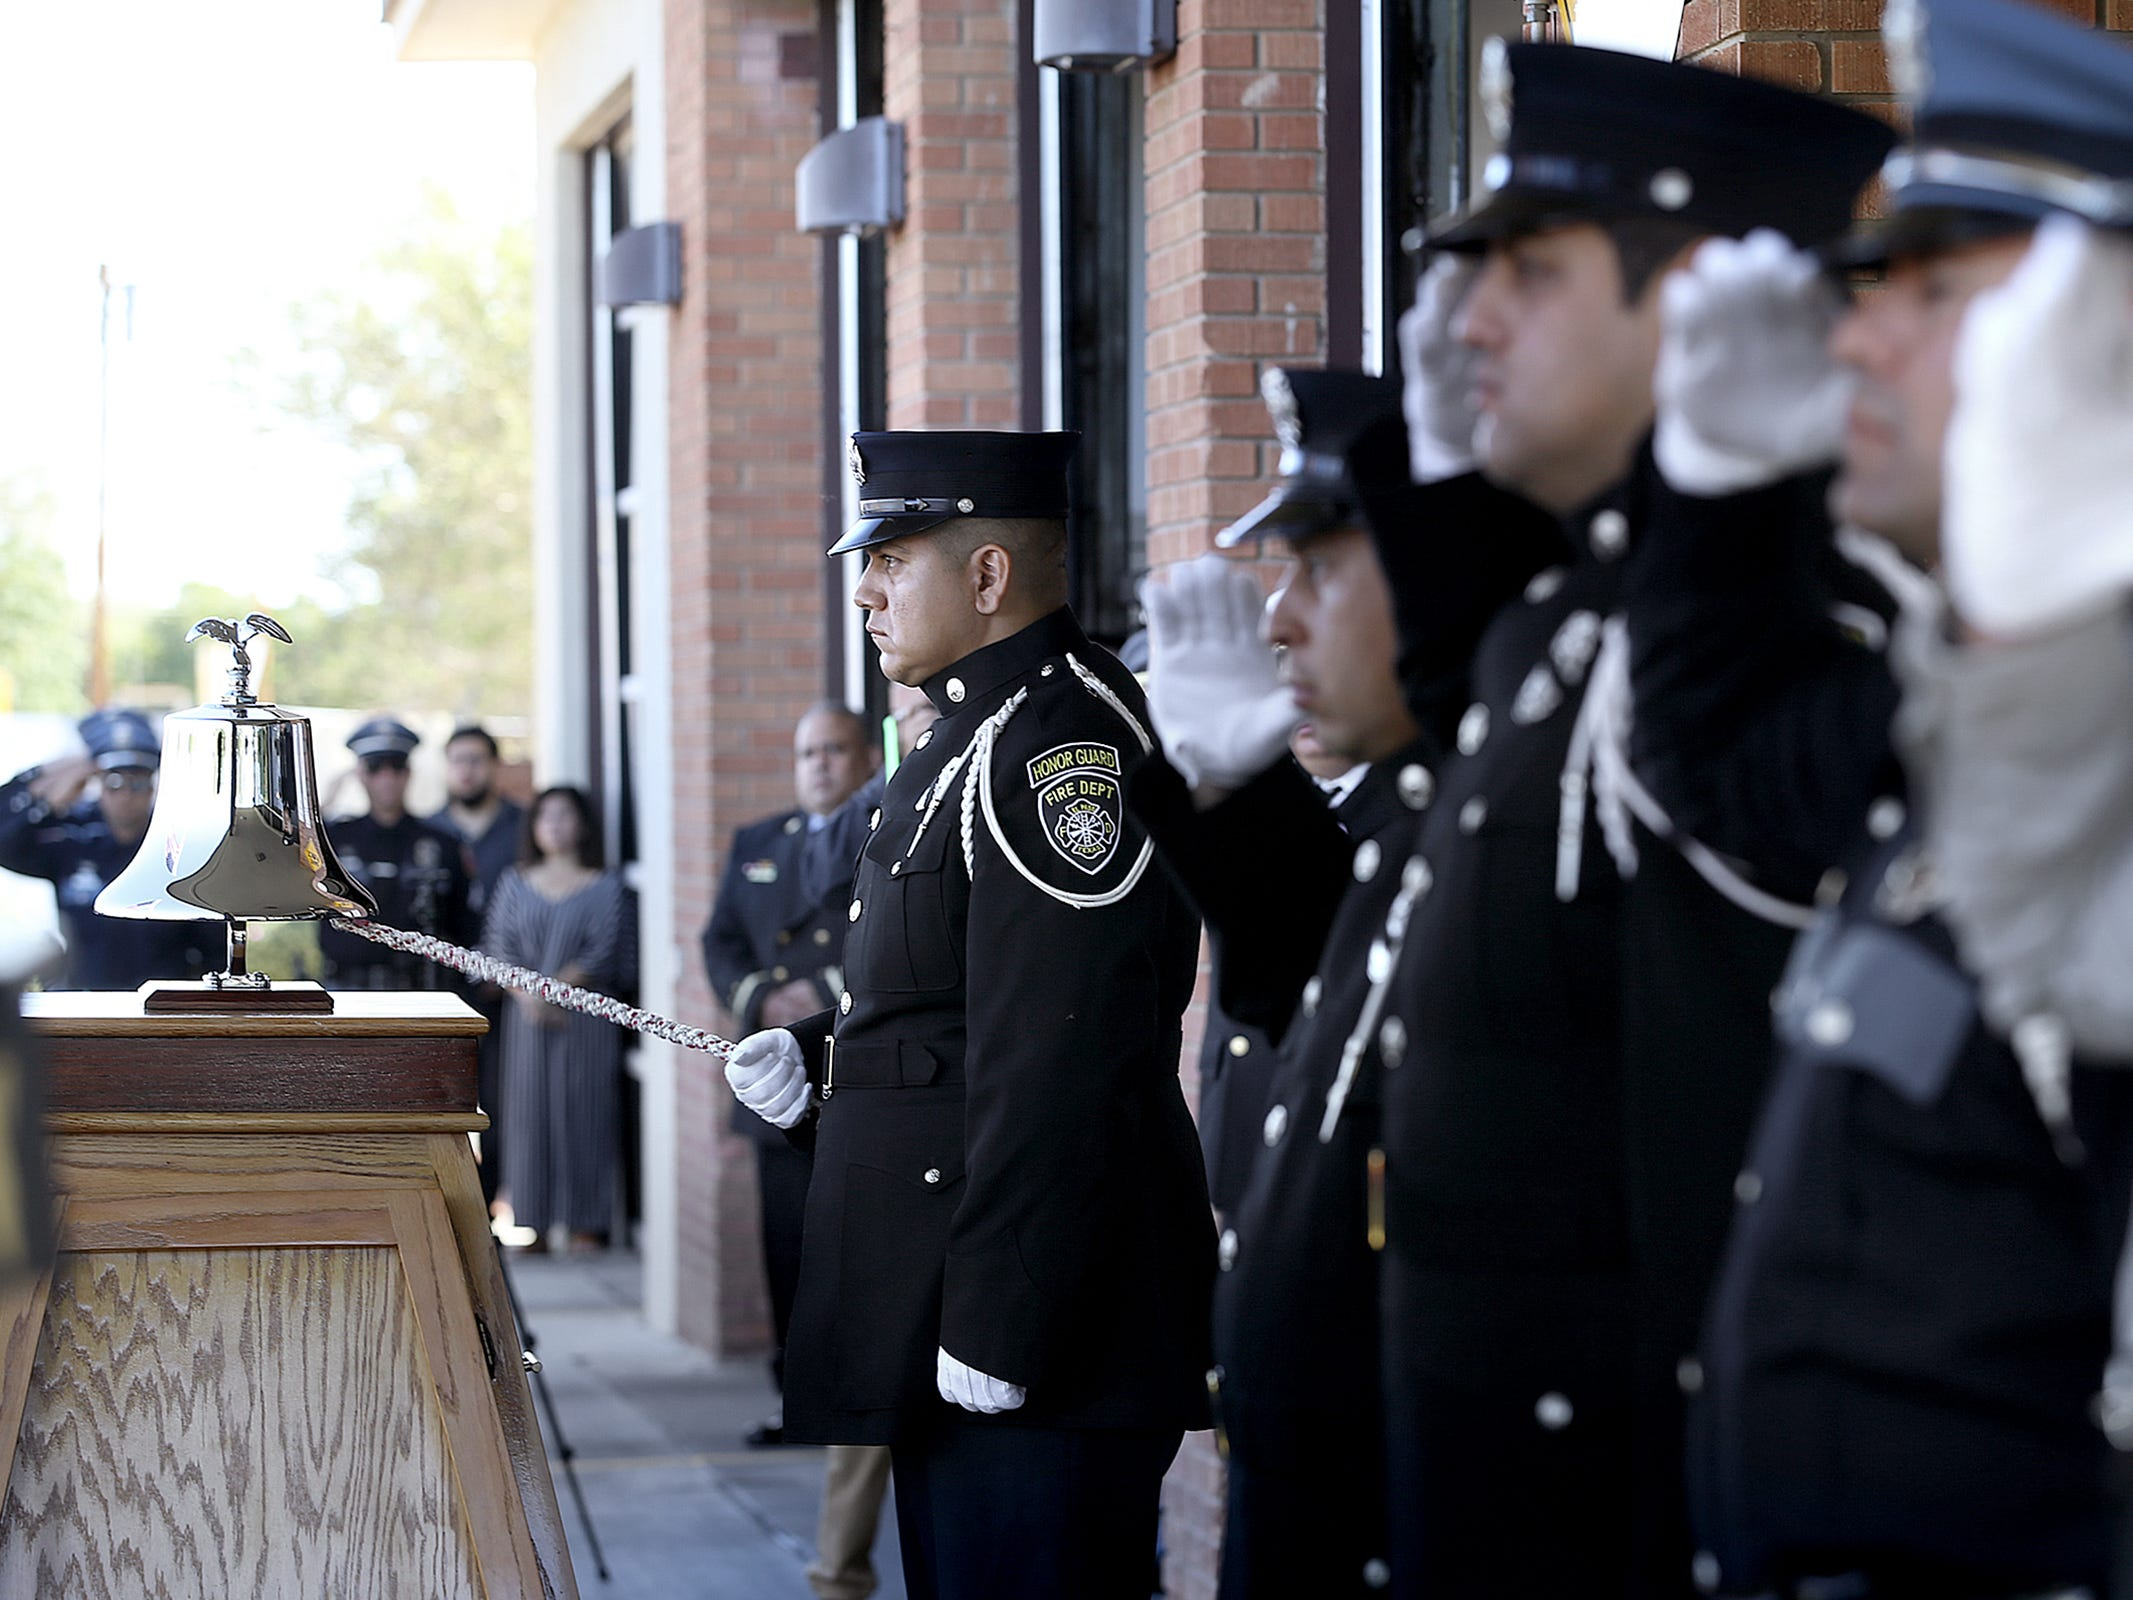 A member of the El Paso Fire Department Honor Guard rings the Final Alarm to honor  the 343 New York City Firefighters, 23 NYPD officers and 37 Port Authority Officers who lost their lives on 9/11. They also honored the soldiers who have lost their lives fighting terrorism since 9/11. A memorial ceremony was held Tuesday at Fire Station 18.